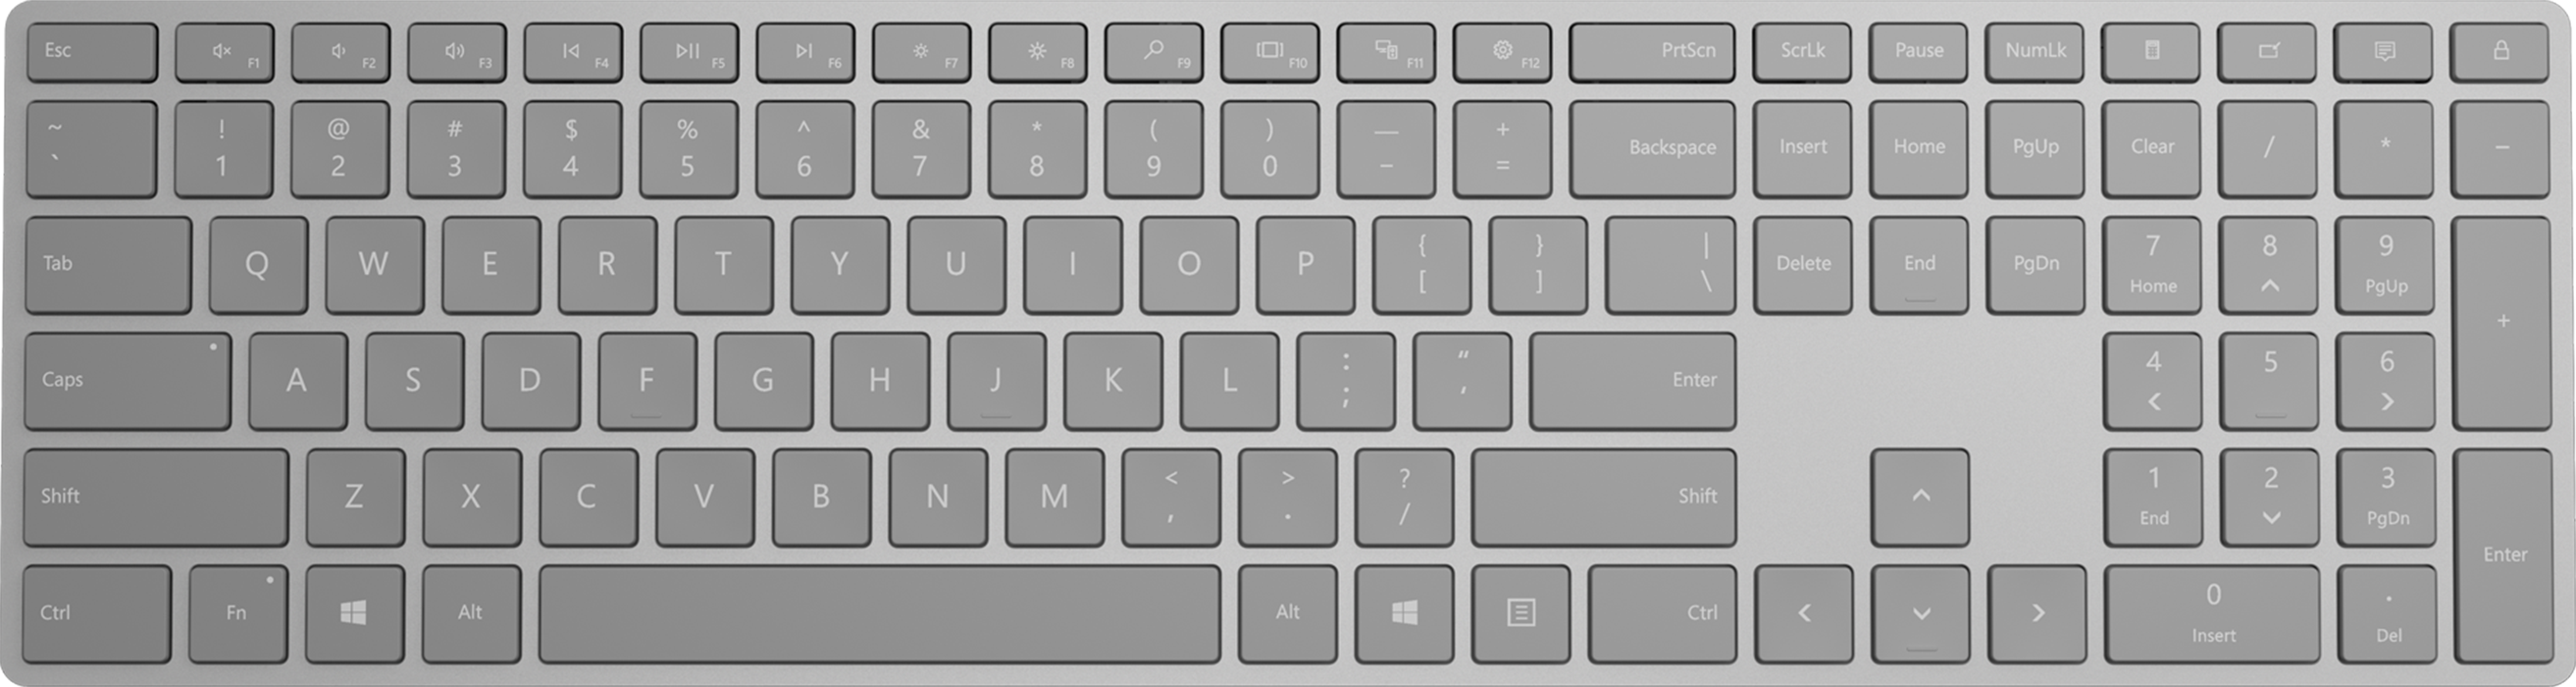 Surface Keyboard - English  How To Install A Code On Your Website?